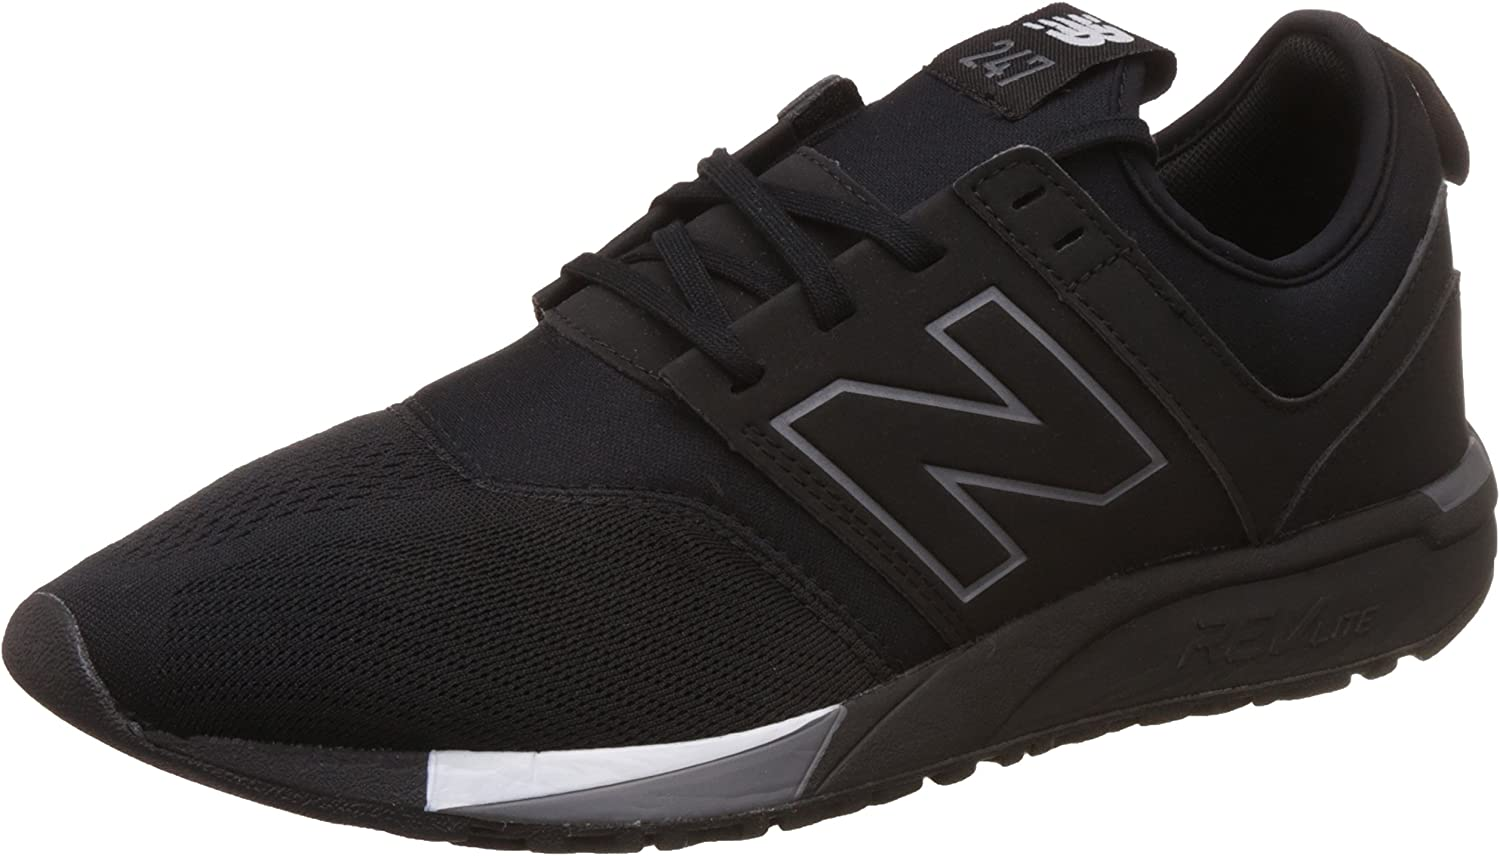 New Balance Men shoes Sneakers 247 Classic